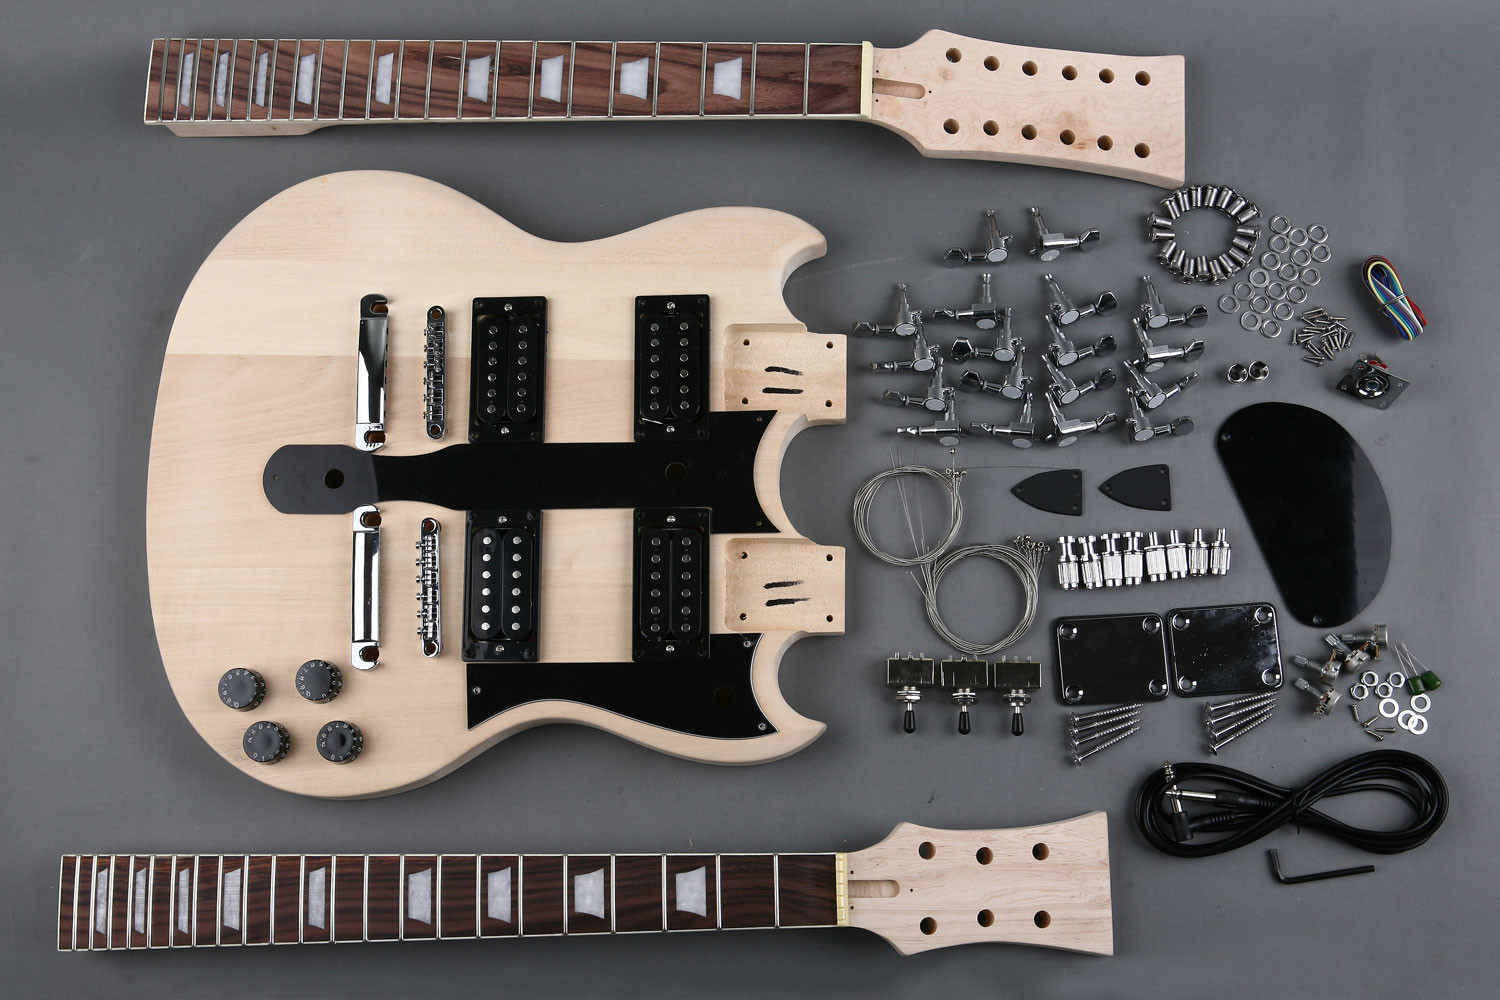 DIY Double Neck Guitar Kit  Solid wood Double Neck Electric Guitar Kit DIY GK SBD 10